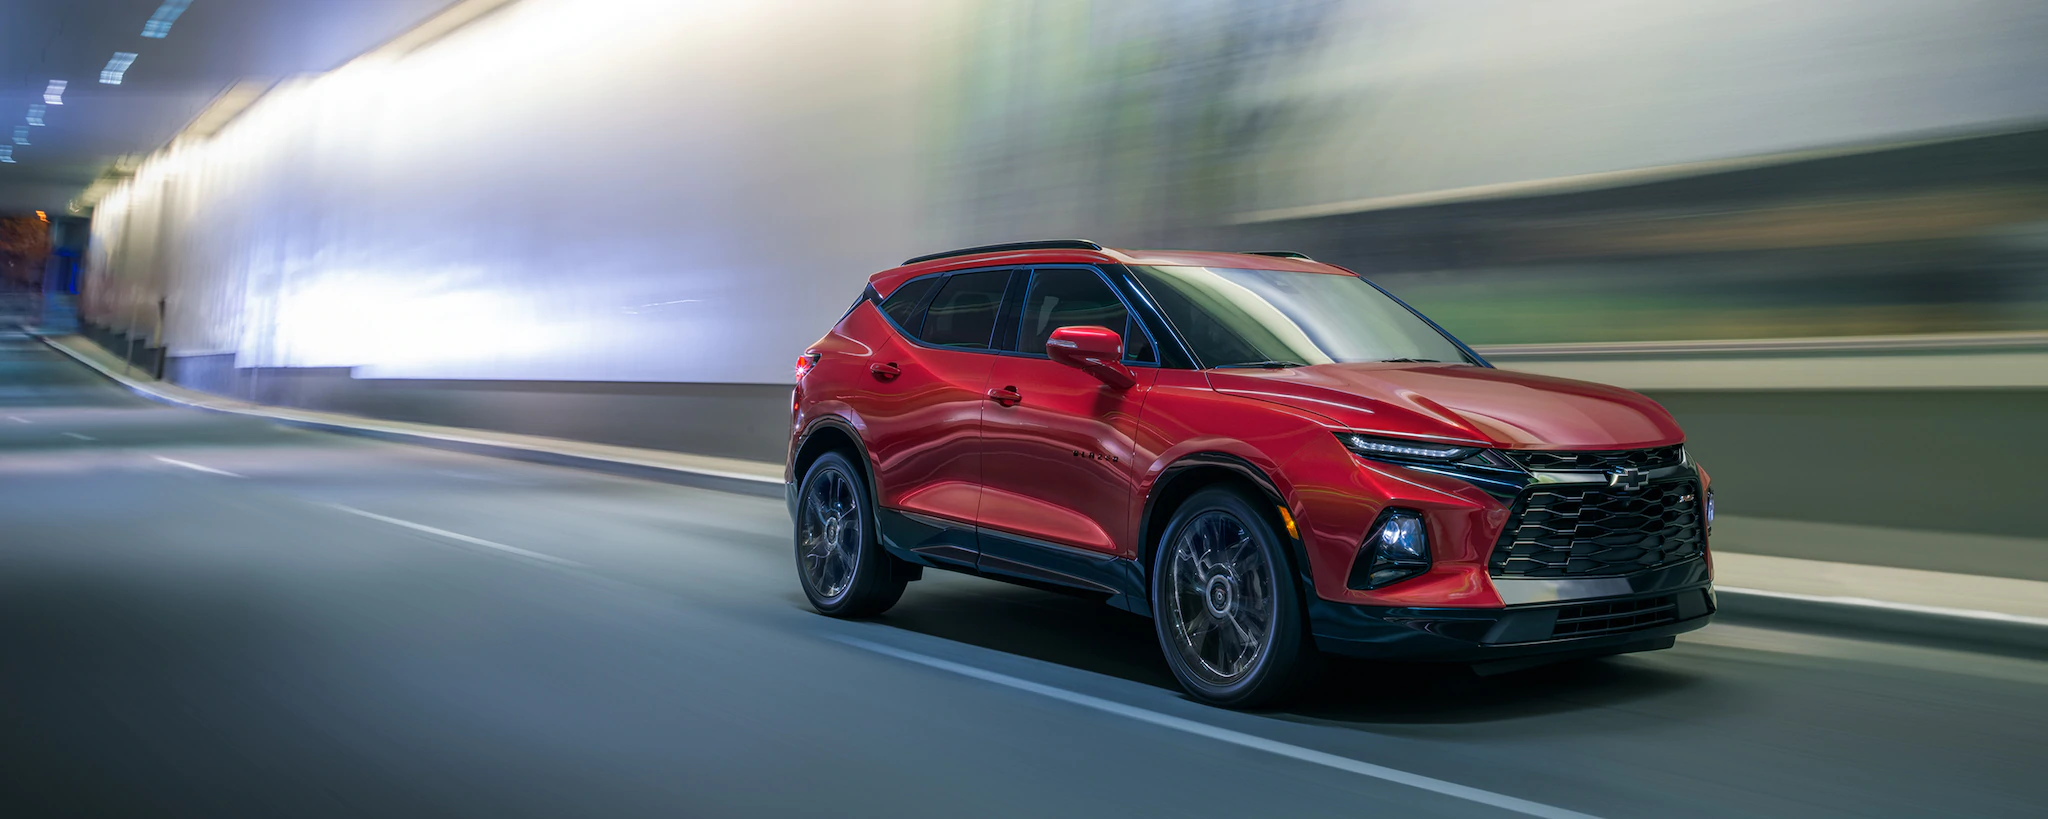 2020 Chevy Blazer Winnipeg MB